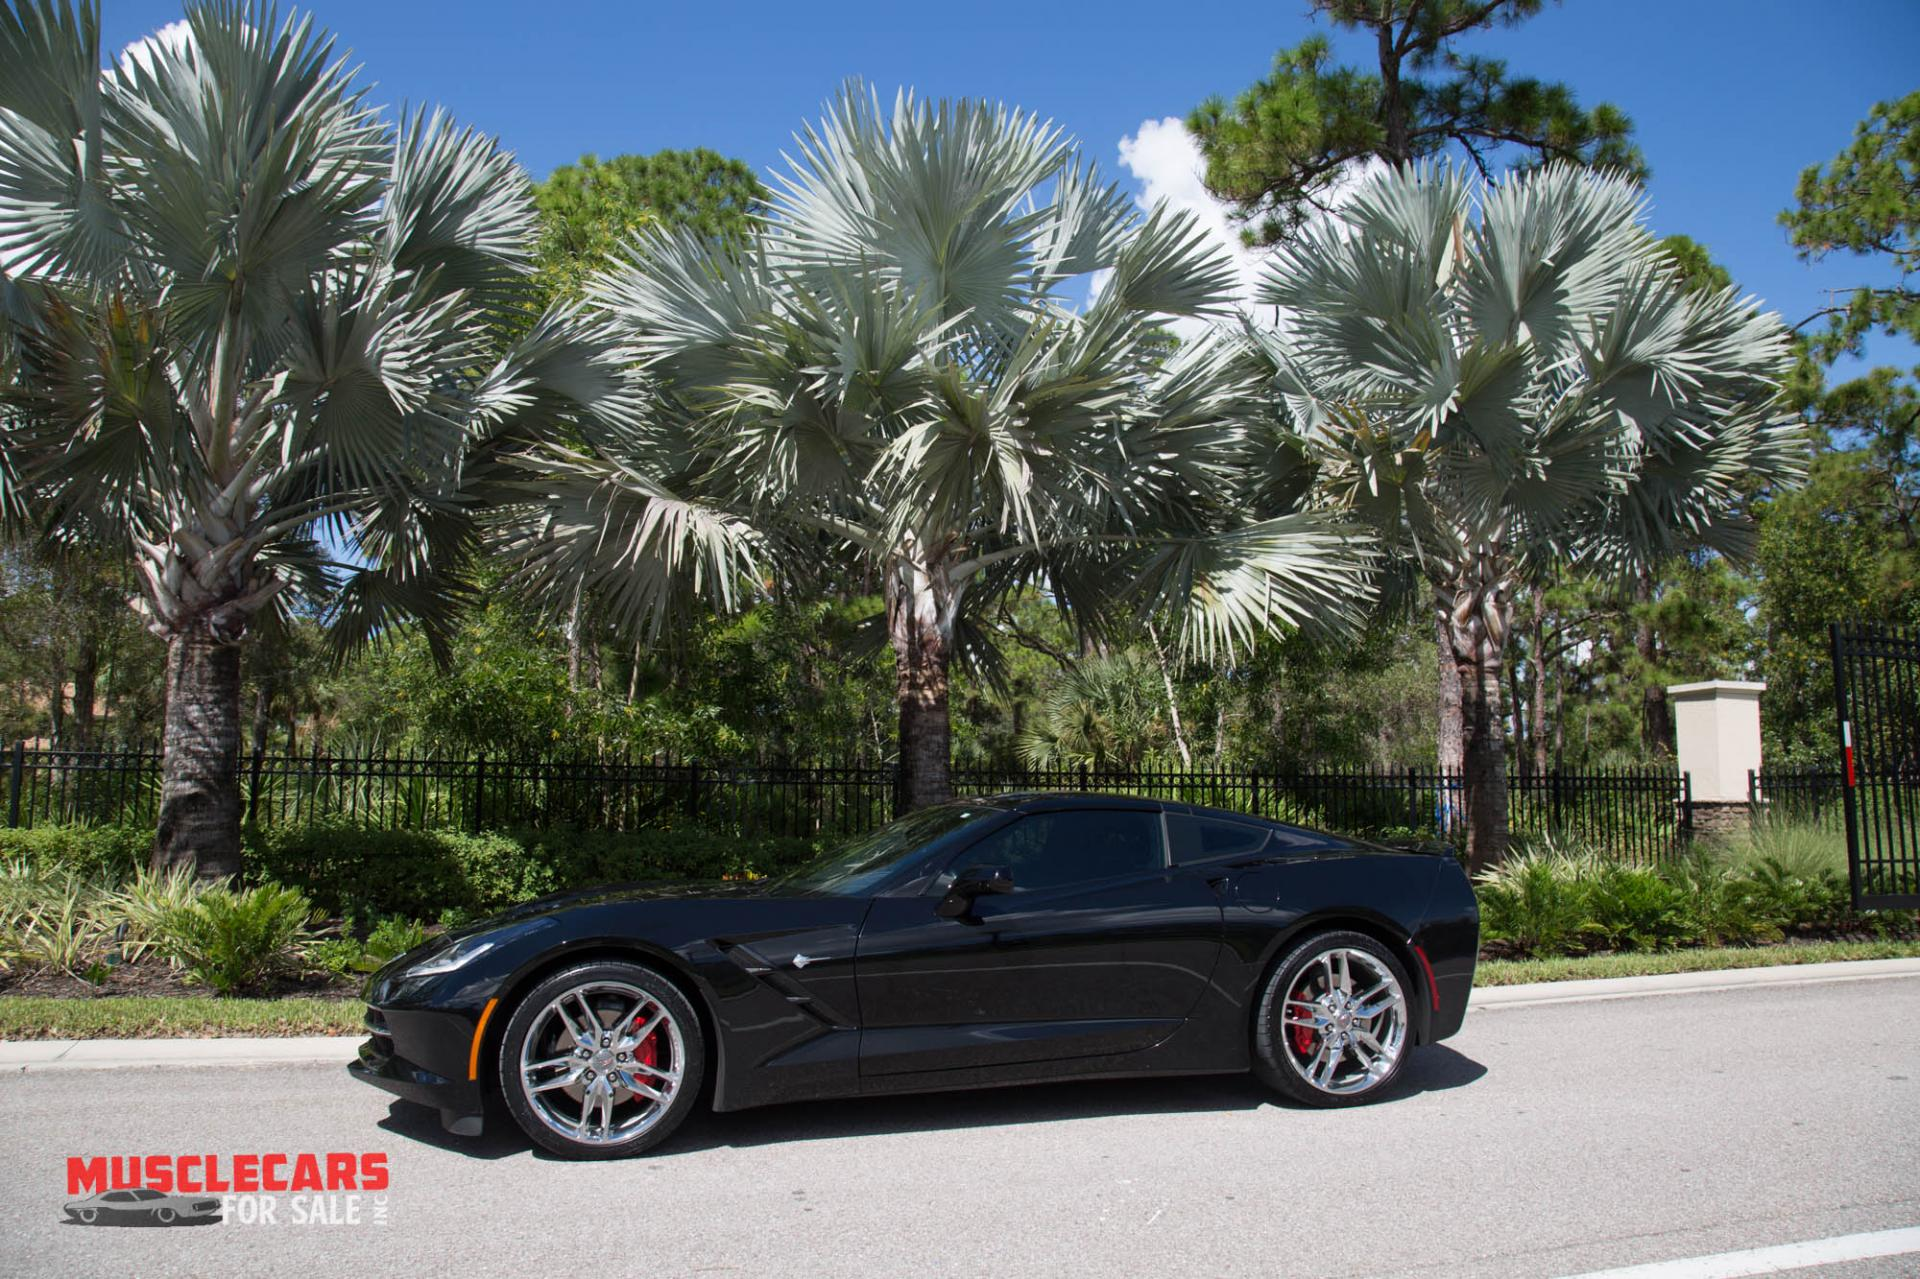 Used 2015 Chevrolet Corvette Stingray for sale Sold at Muscle Cars for Sale Inc. in Fort Myers FL 33912 6